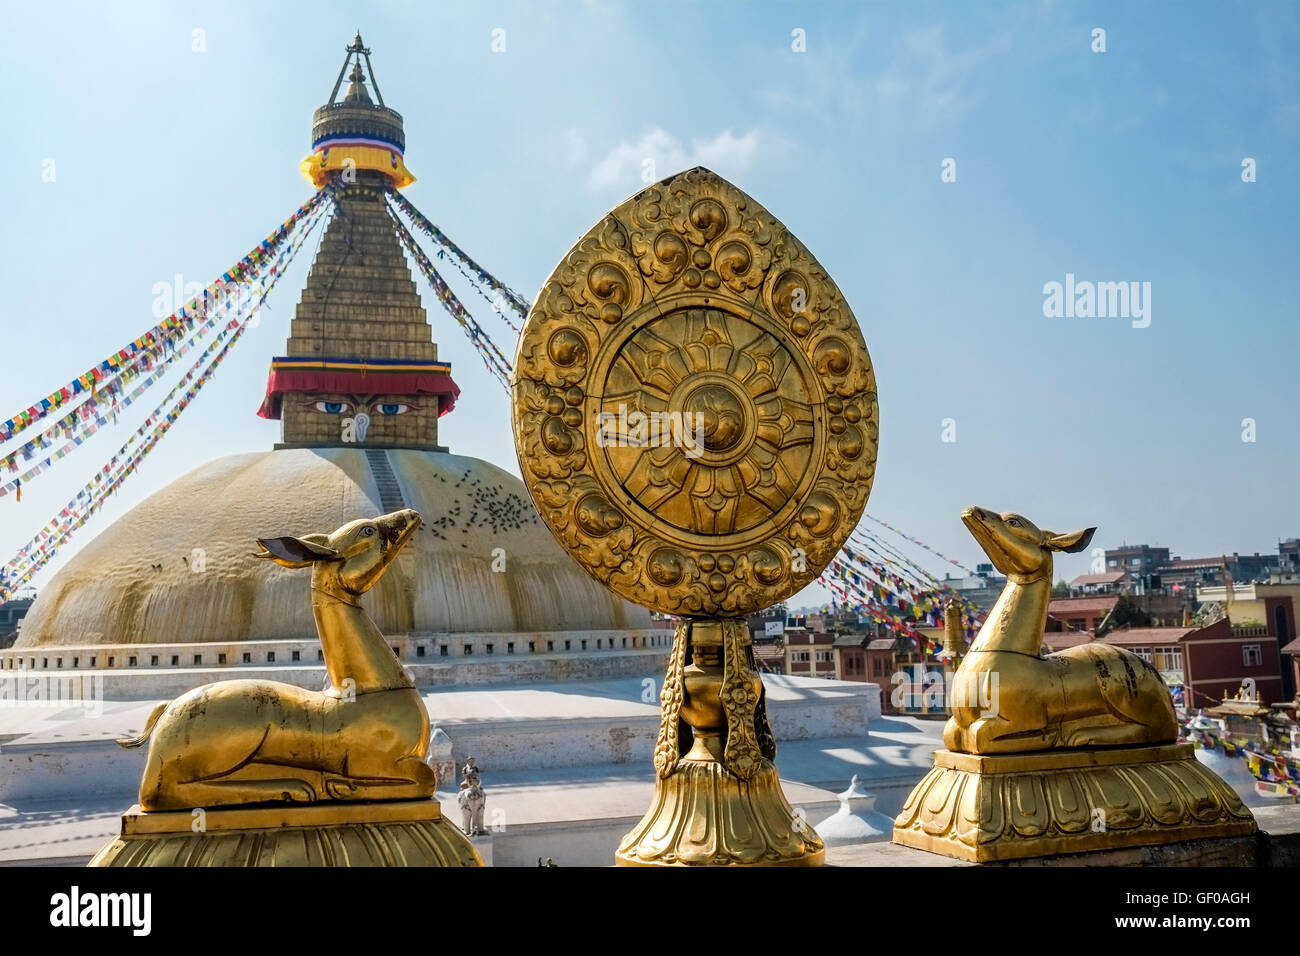 Statues and stupa in Boudhanath (also kn own as Bodnath) temple, Kathamandu area, Nepal. - Stock Image